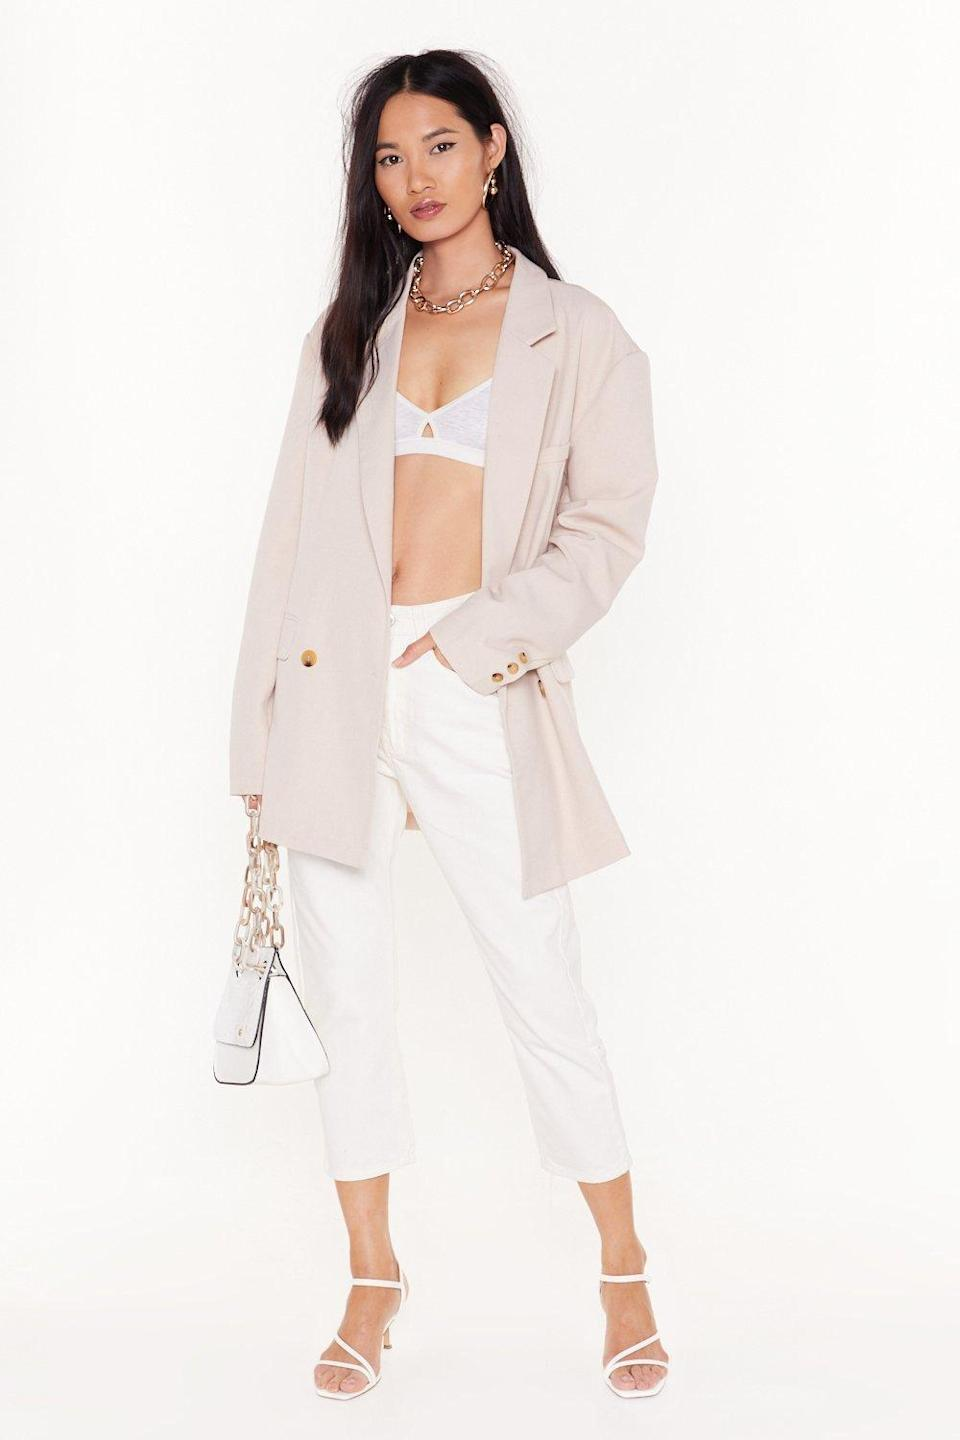 """<br> <br> <strong>Inclusive Collection</strong> Debbie High-Waisted Mom Jeans, $, available at <a href=""""https://go.skimresources.com/?id=30283X879131&url=https%3A%2F%2Fwww.nastygal.com%2F-debbie-high-waisted-mom-jeans%2FAGG75765.html%3Fcolor%3D173"""" rel=""""nofollow noopener"""" target=""""_blank"""" data-ylk=""""slk:Nasty Gal"""" class=""""link rapid-noclick-resp"""">Nasty Gal</a>"""